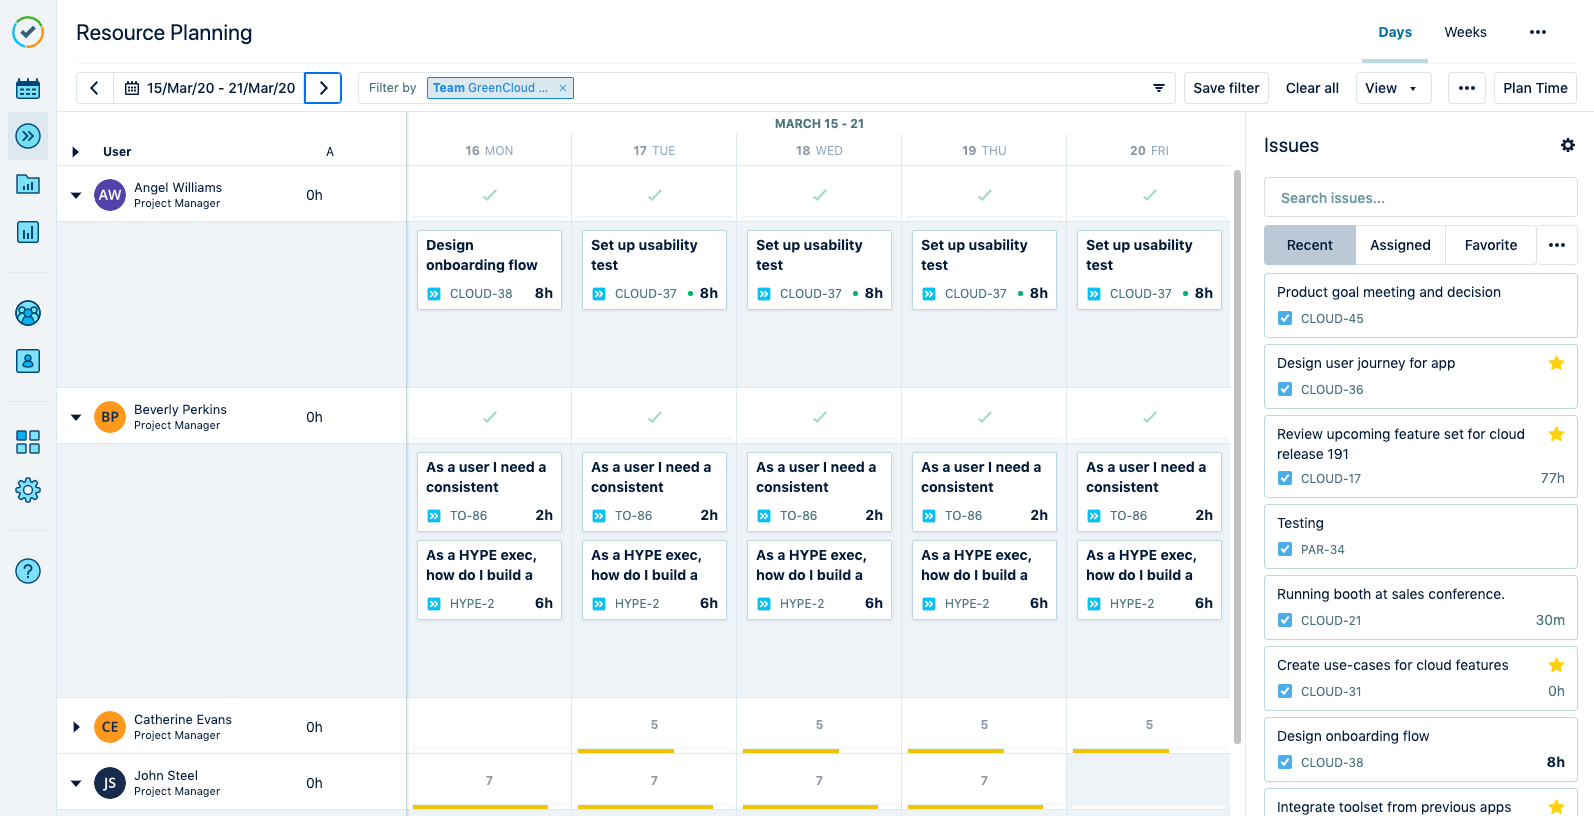 Resource planning - Tempo Planner view